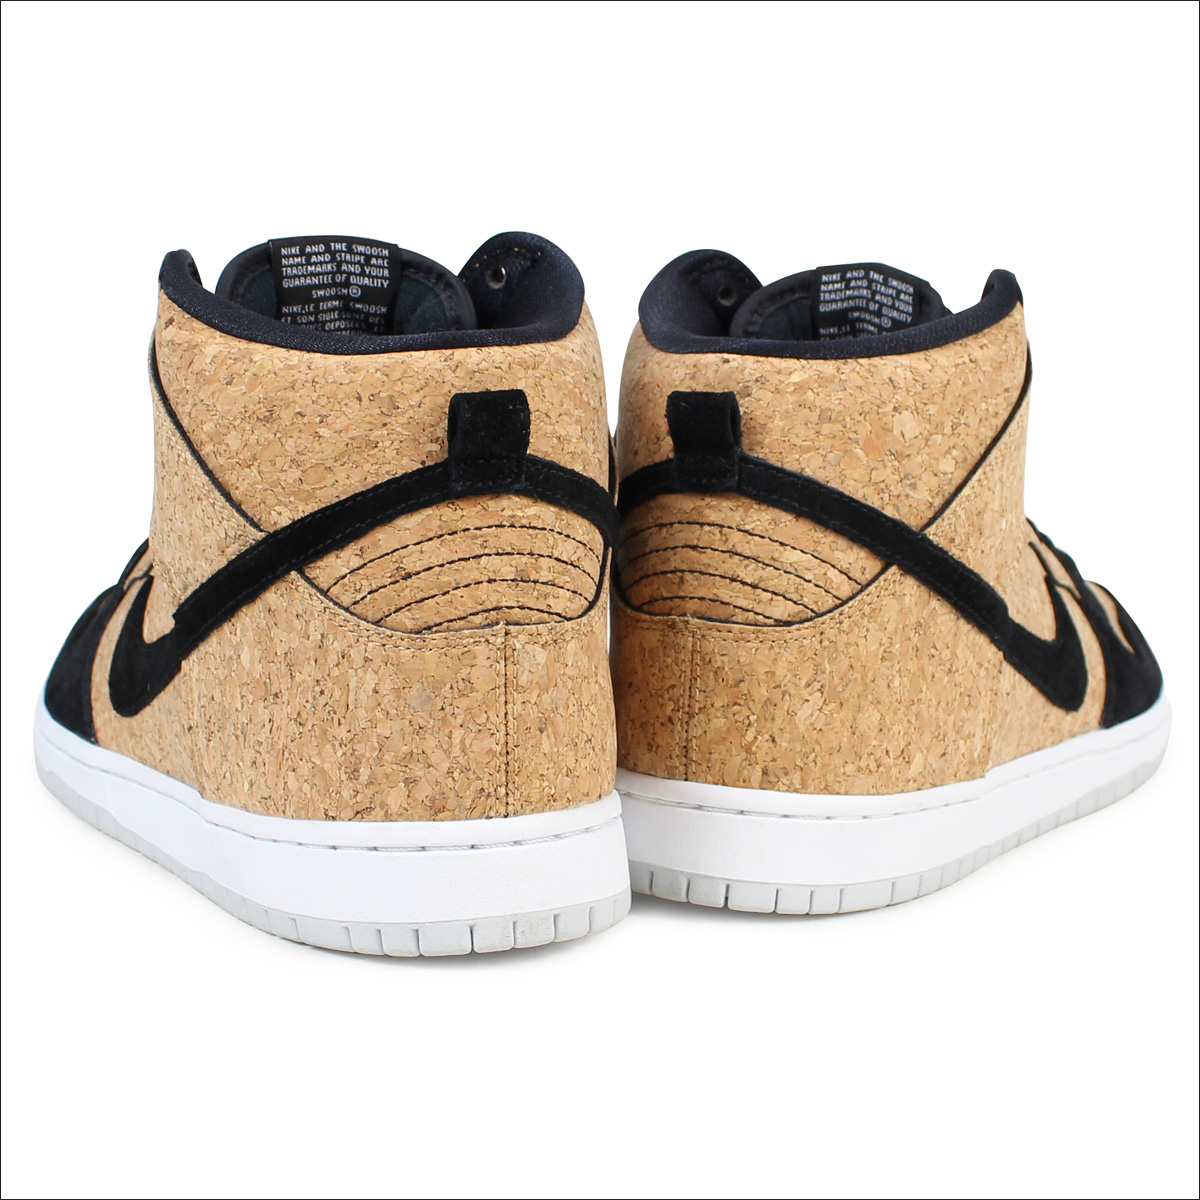 buy online b127c 10b0e NIKE SB DUNK HIGH PREMIUM CORK Nike dunk high sneakers 313,171-026 men s  shoes white